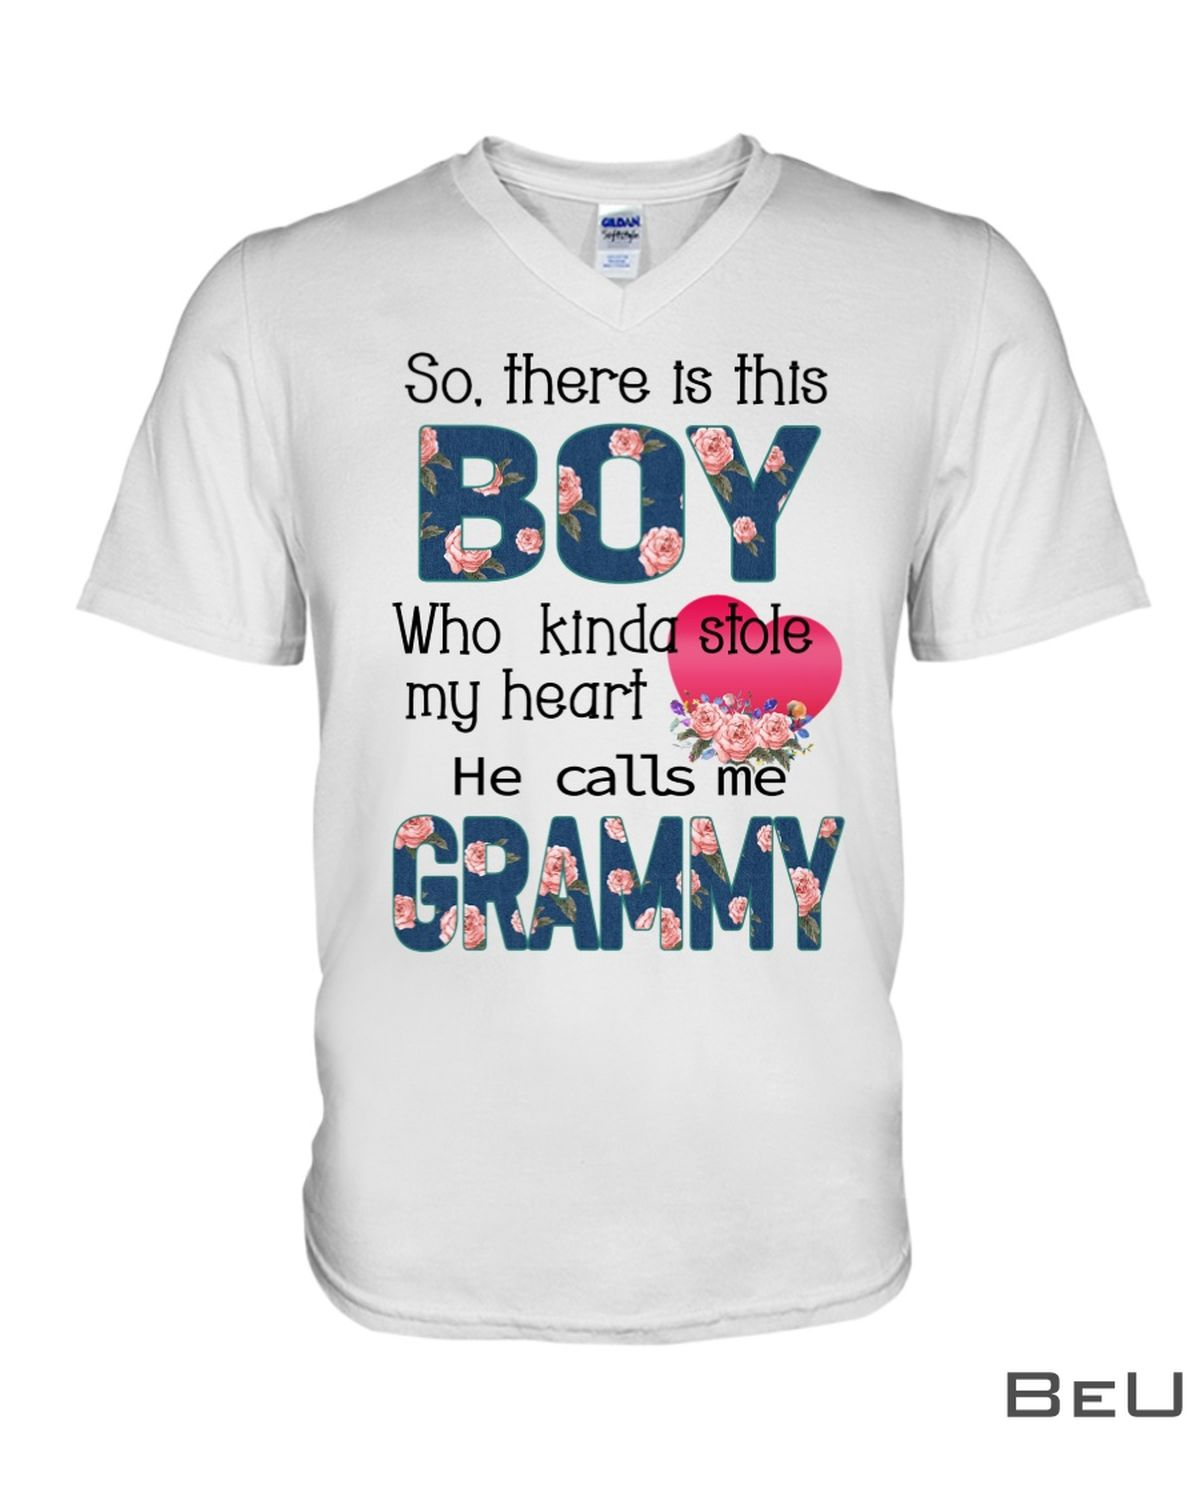 So there is this boy who kinda stole my heart He calls me Grammy shirtx